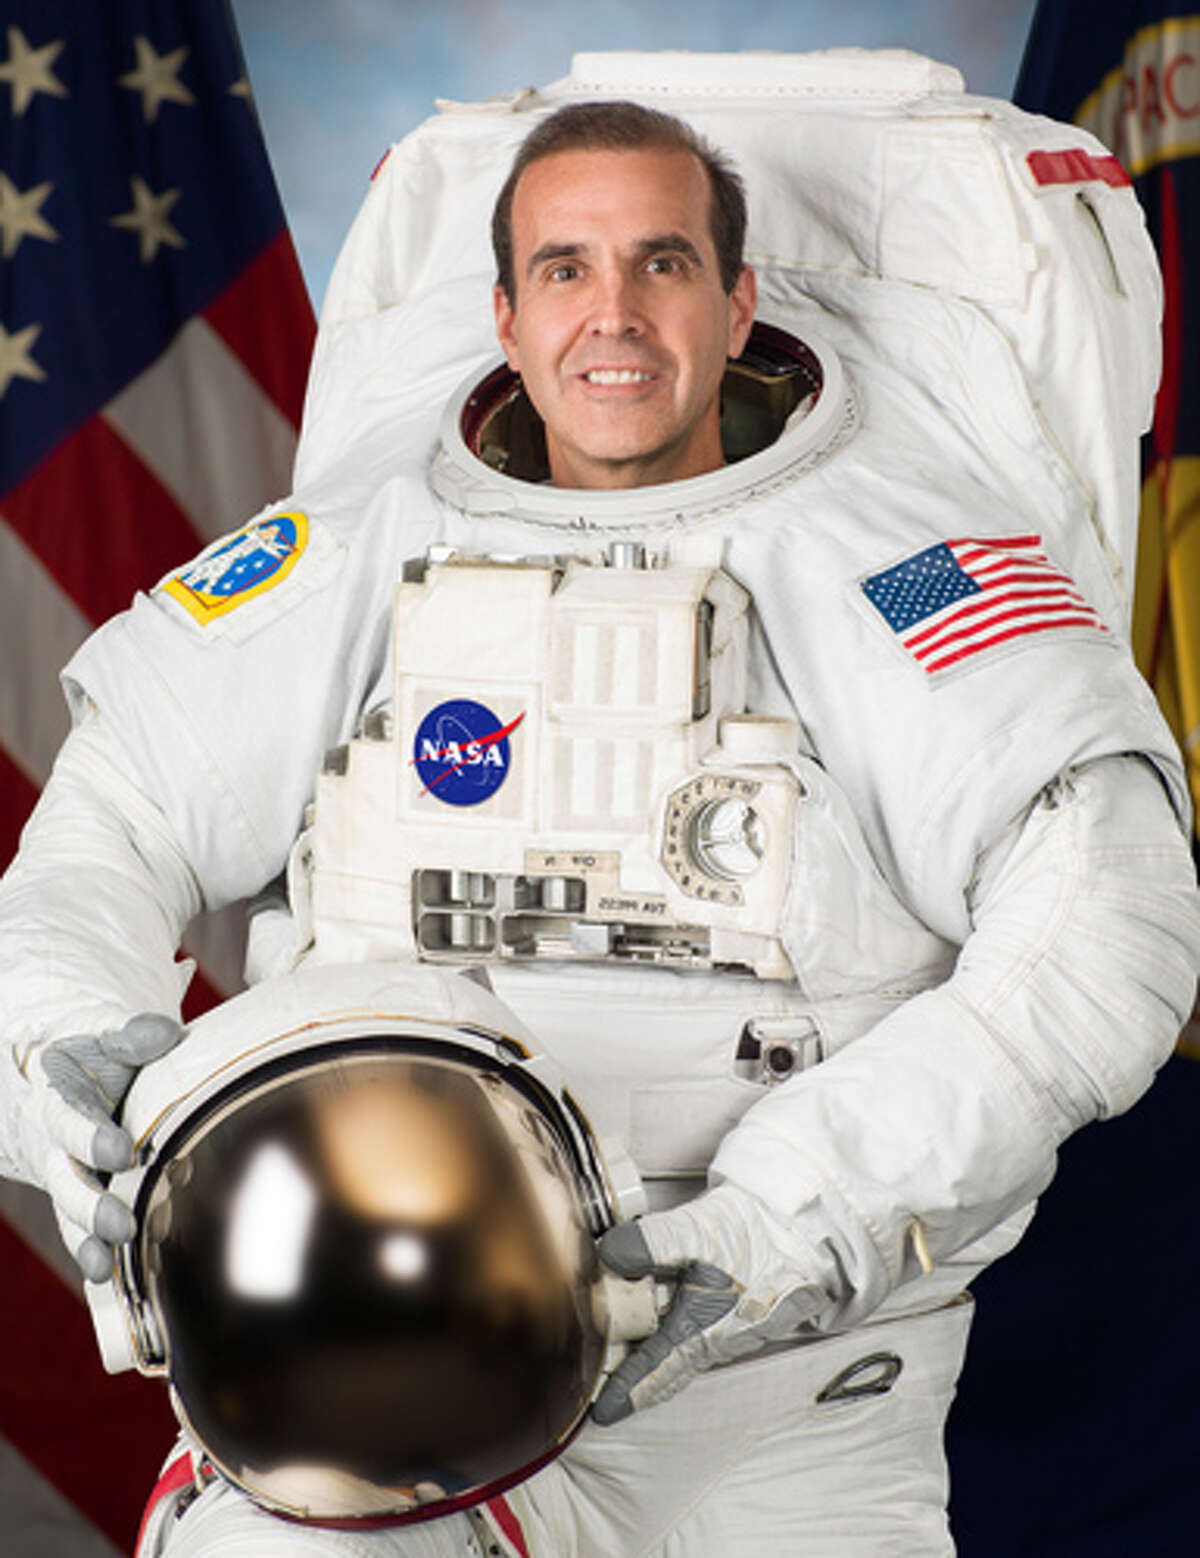 The University of Connecticut will host 9 commencement speakers this year:- School of Engineering, May 10: Astronaut and engineer Rick Mastracchio (pictured) is currently orbiting Earth aboard the International Space Station and that will be the spot where he records his commencement remarks for the School of Engineering ceremony. Mastracchio's speech will be broadcast to an audience that will include his own family along with the graduating seniors and their families.- Graduate School, May 10: Liza Donnelly, Doctor of Fine Arts- School of Pharmacy, May 10: Peter R. Farina, Doctor of Science- College of Agriculture and Natural Resources, May 10: George M. Woodwell, Doctor of Science- College of liberal Arts and Science, May 11: Philip Uri Treisman, Doctor of Humane Letters- School of Nursing, May 11: Martin McNamara, Doctor of Science- School of Business, May 11: Philip H. Lodewick, Doctor of Humane Letters- Medical School, May 18: Richard Besser, Doctor of Science- Law School, May 18: Barry C. Scheck, co-founder of the non-profit legal clinic Innocence ProjectClick here for full bios of all the speakers.